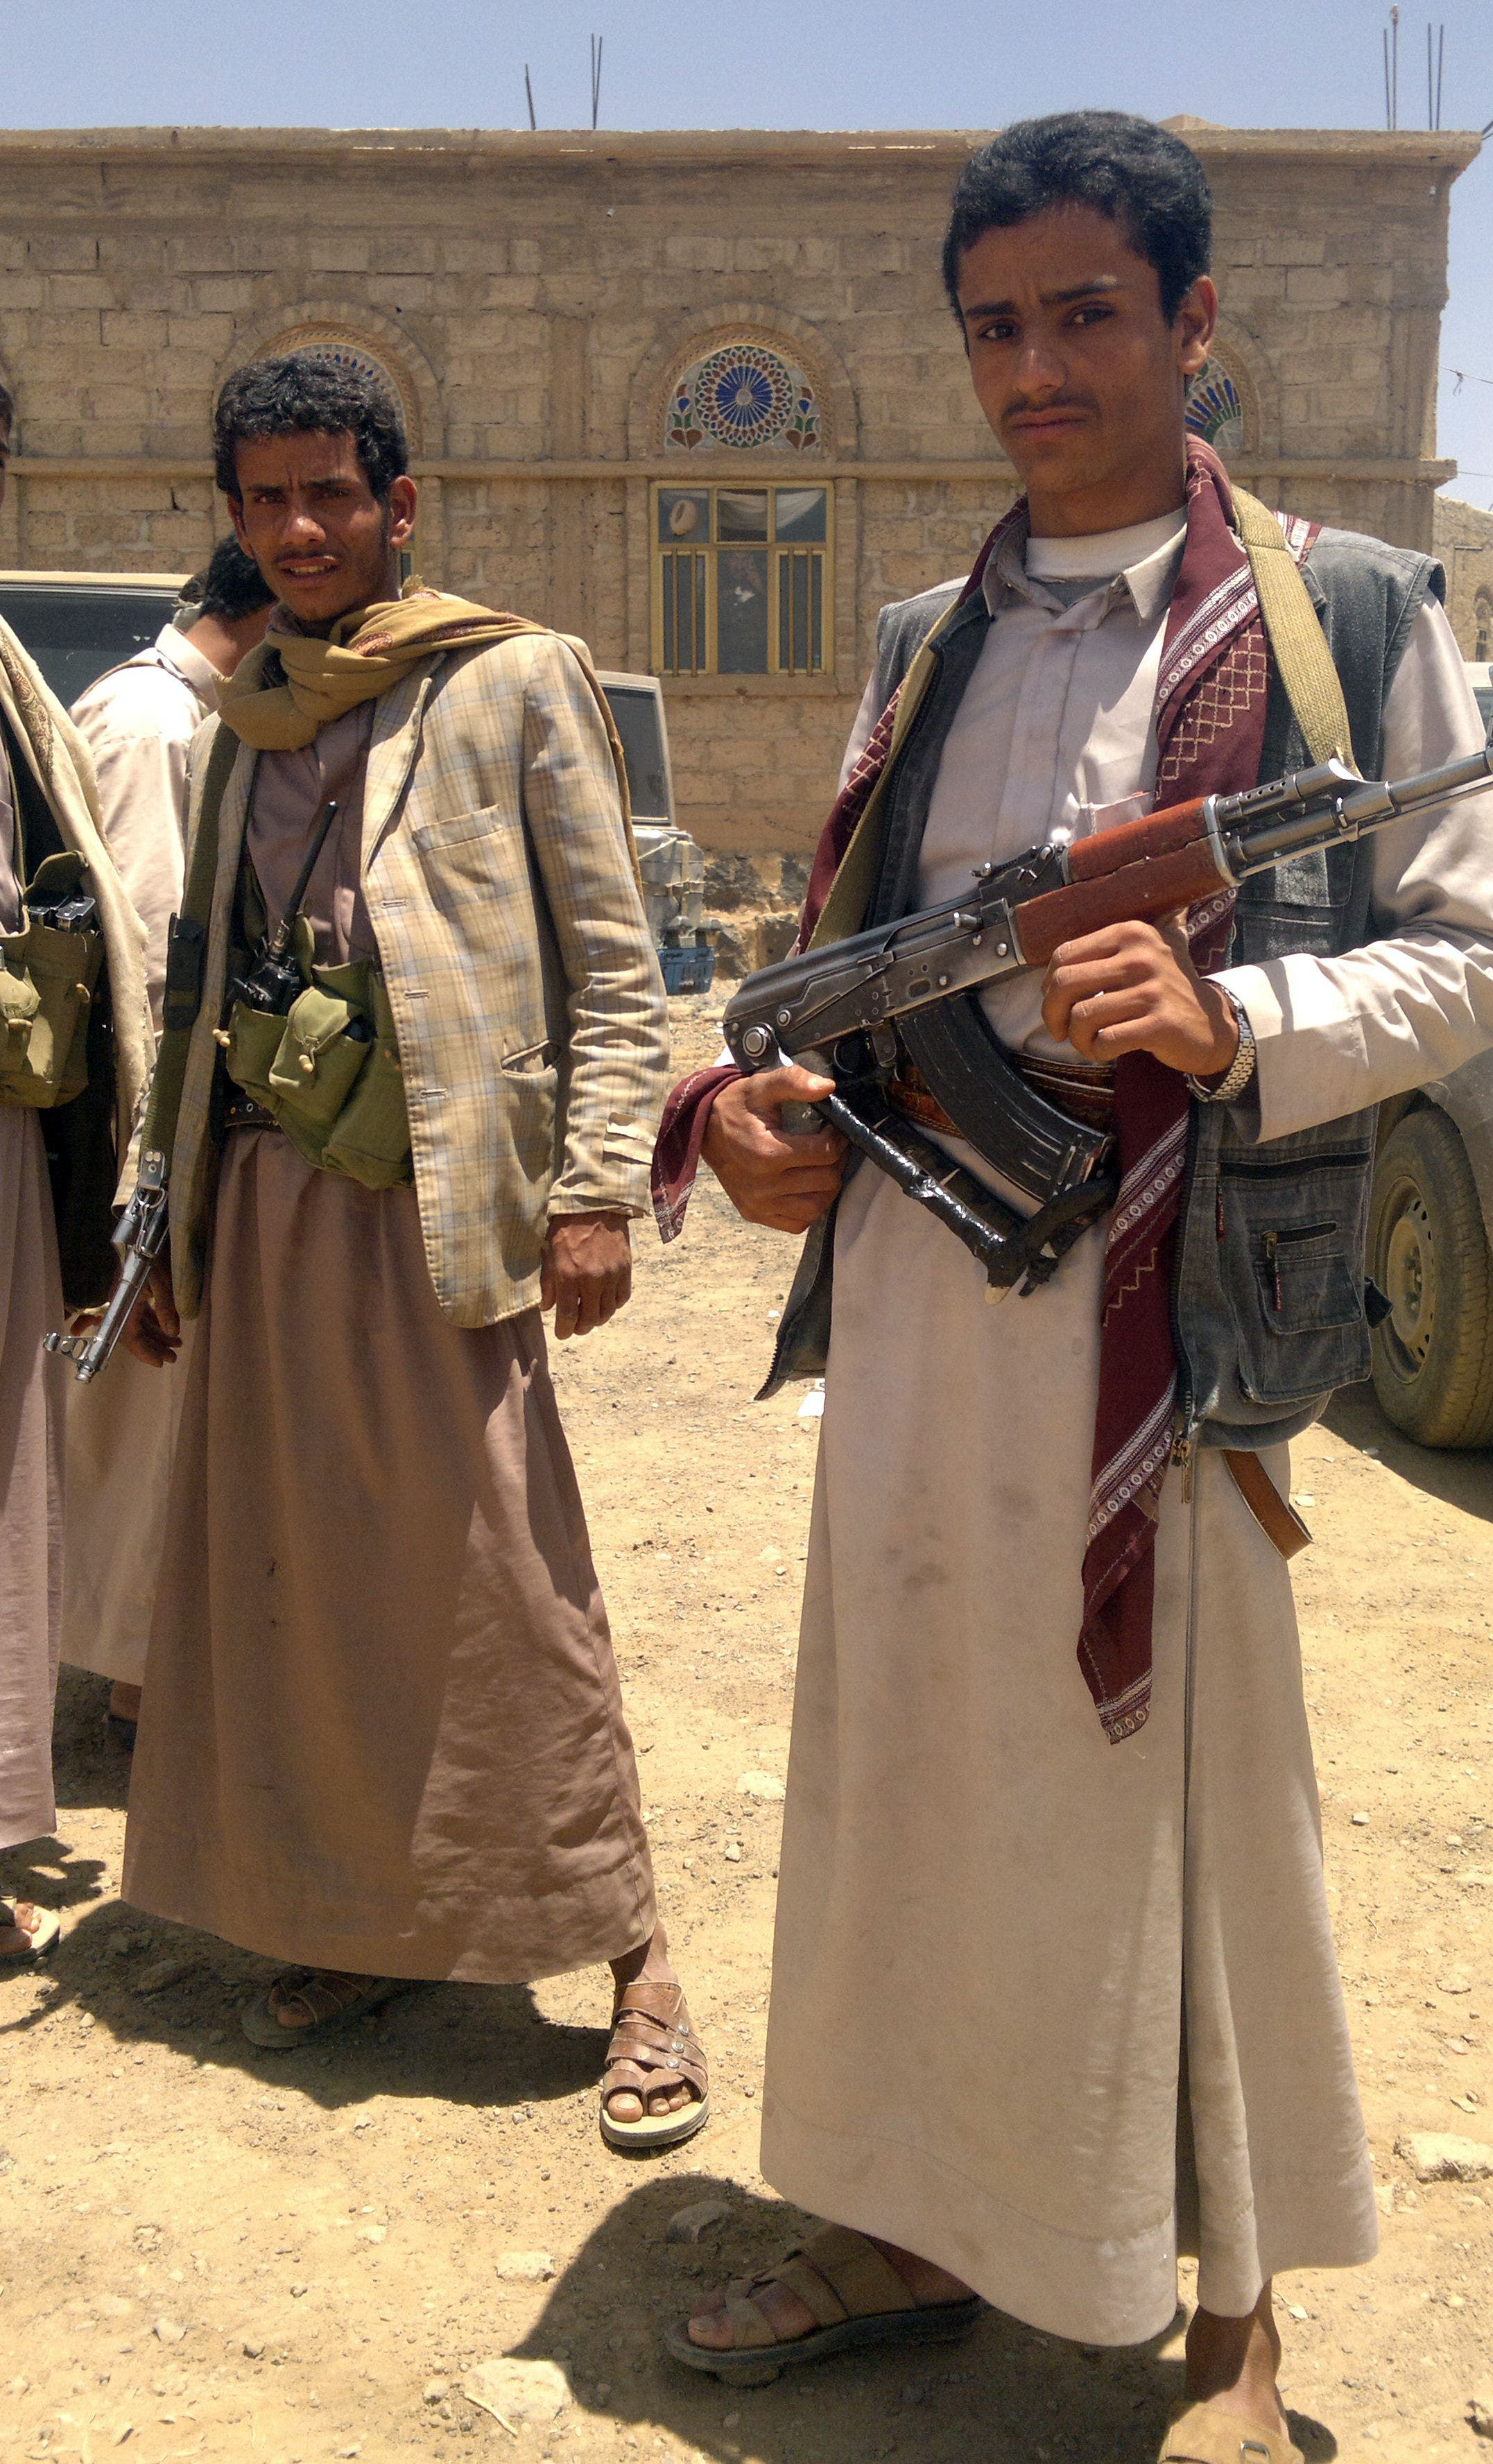 Yemeni Houthi tribesmen pose for a photo north of the capital Sanaa on April 10, 2014 as they rally against the death of five people killed in fighting between tribesmen and the Yemeni army. (AFP)